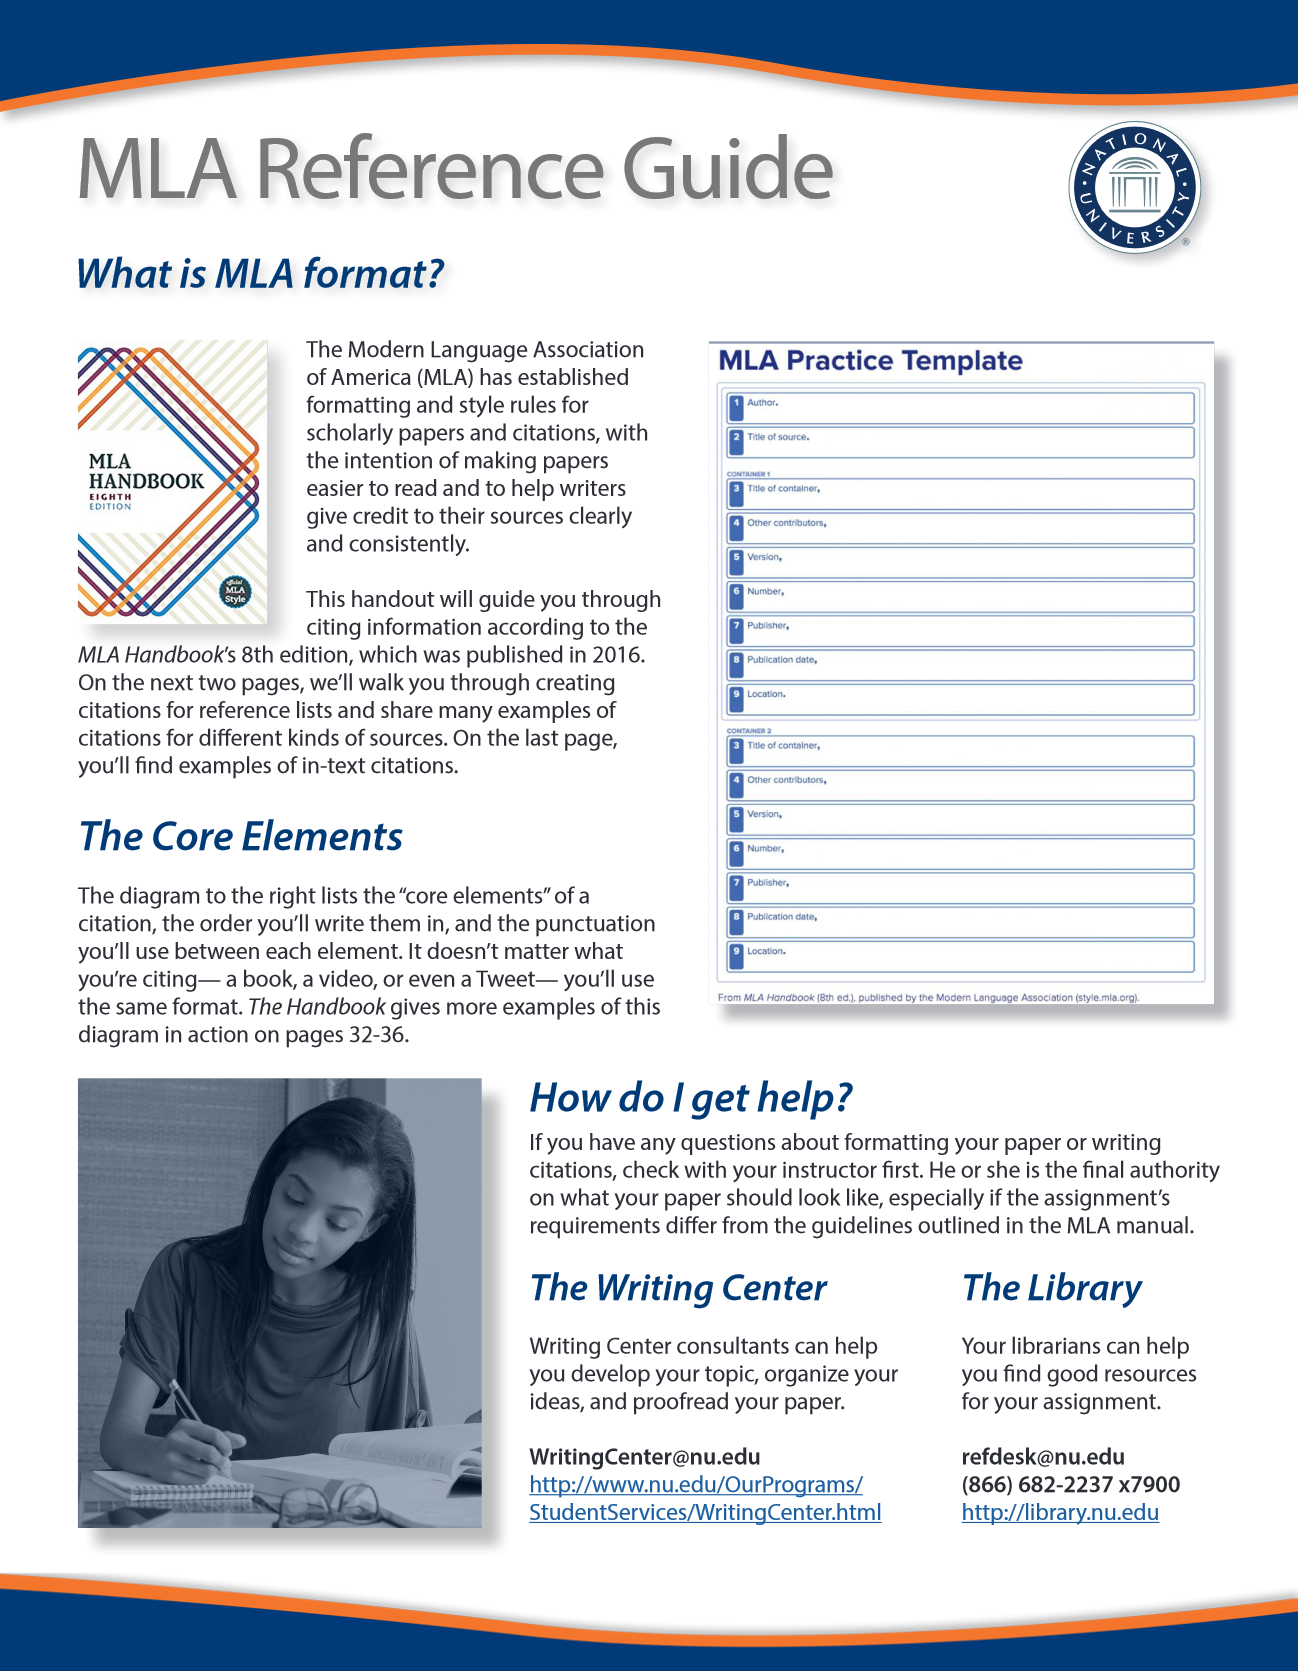 Image of the MLA Reference Guide